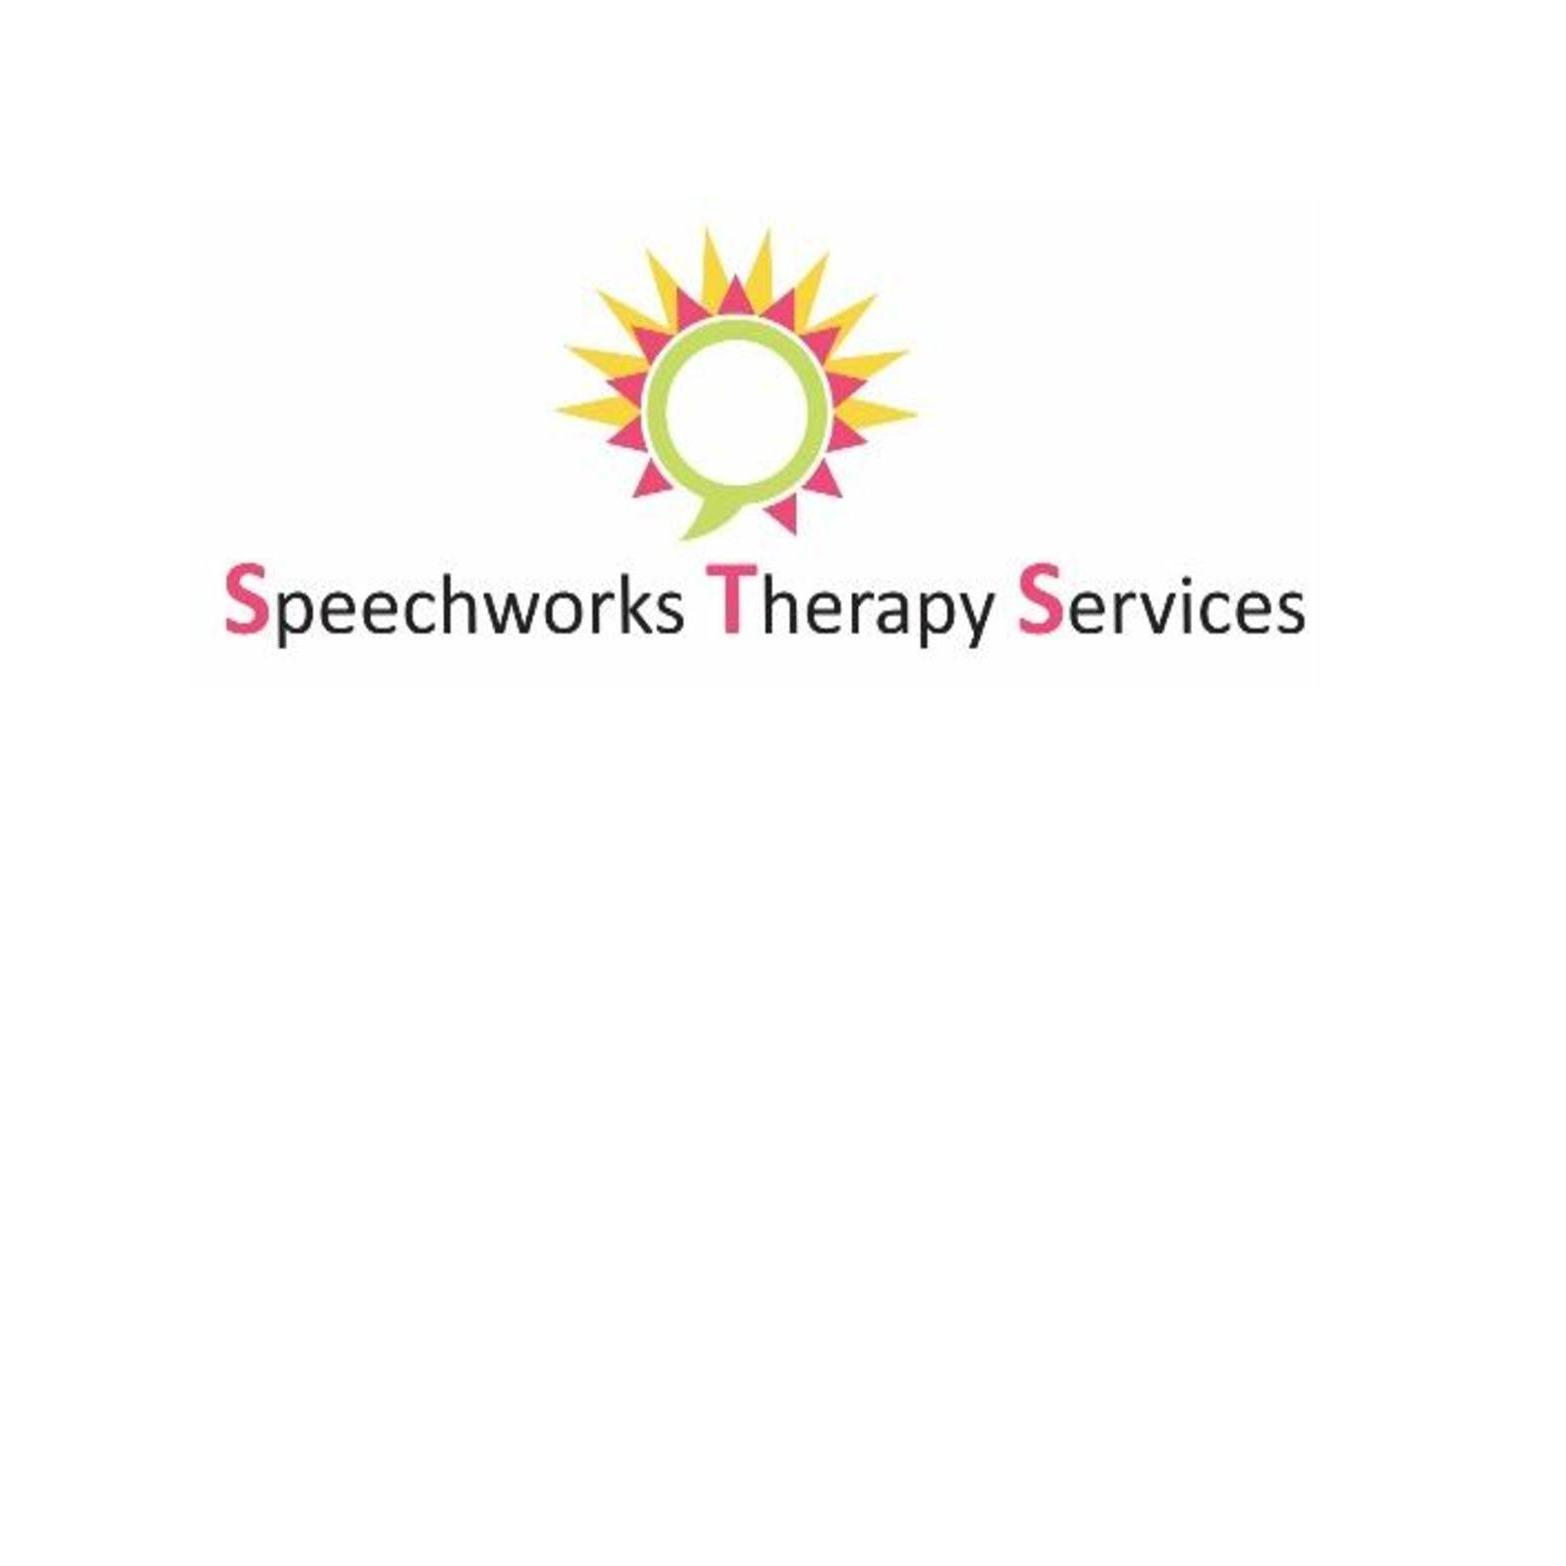 Speechworks Therapy Services - Mint Hill, NC 28227 - (980)237-6226 | ShowMeLocal.com